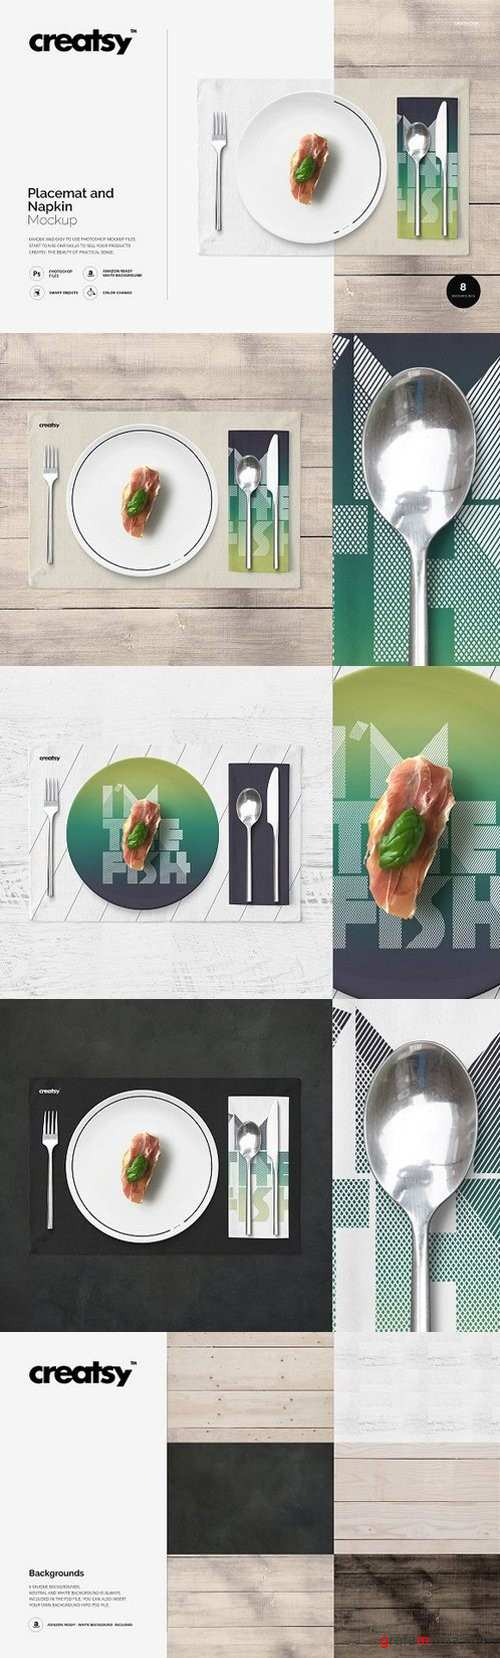 Placemat and Napkin Mockup 1142076